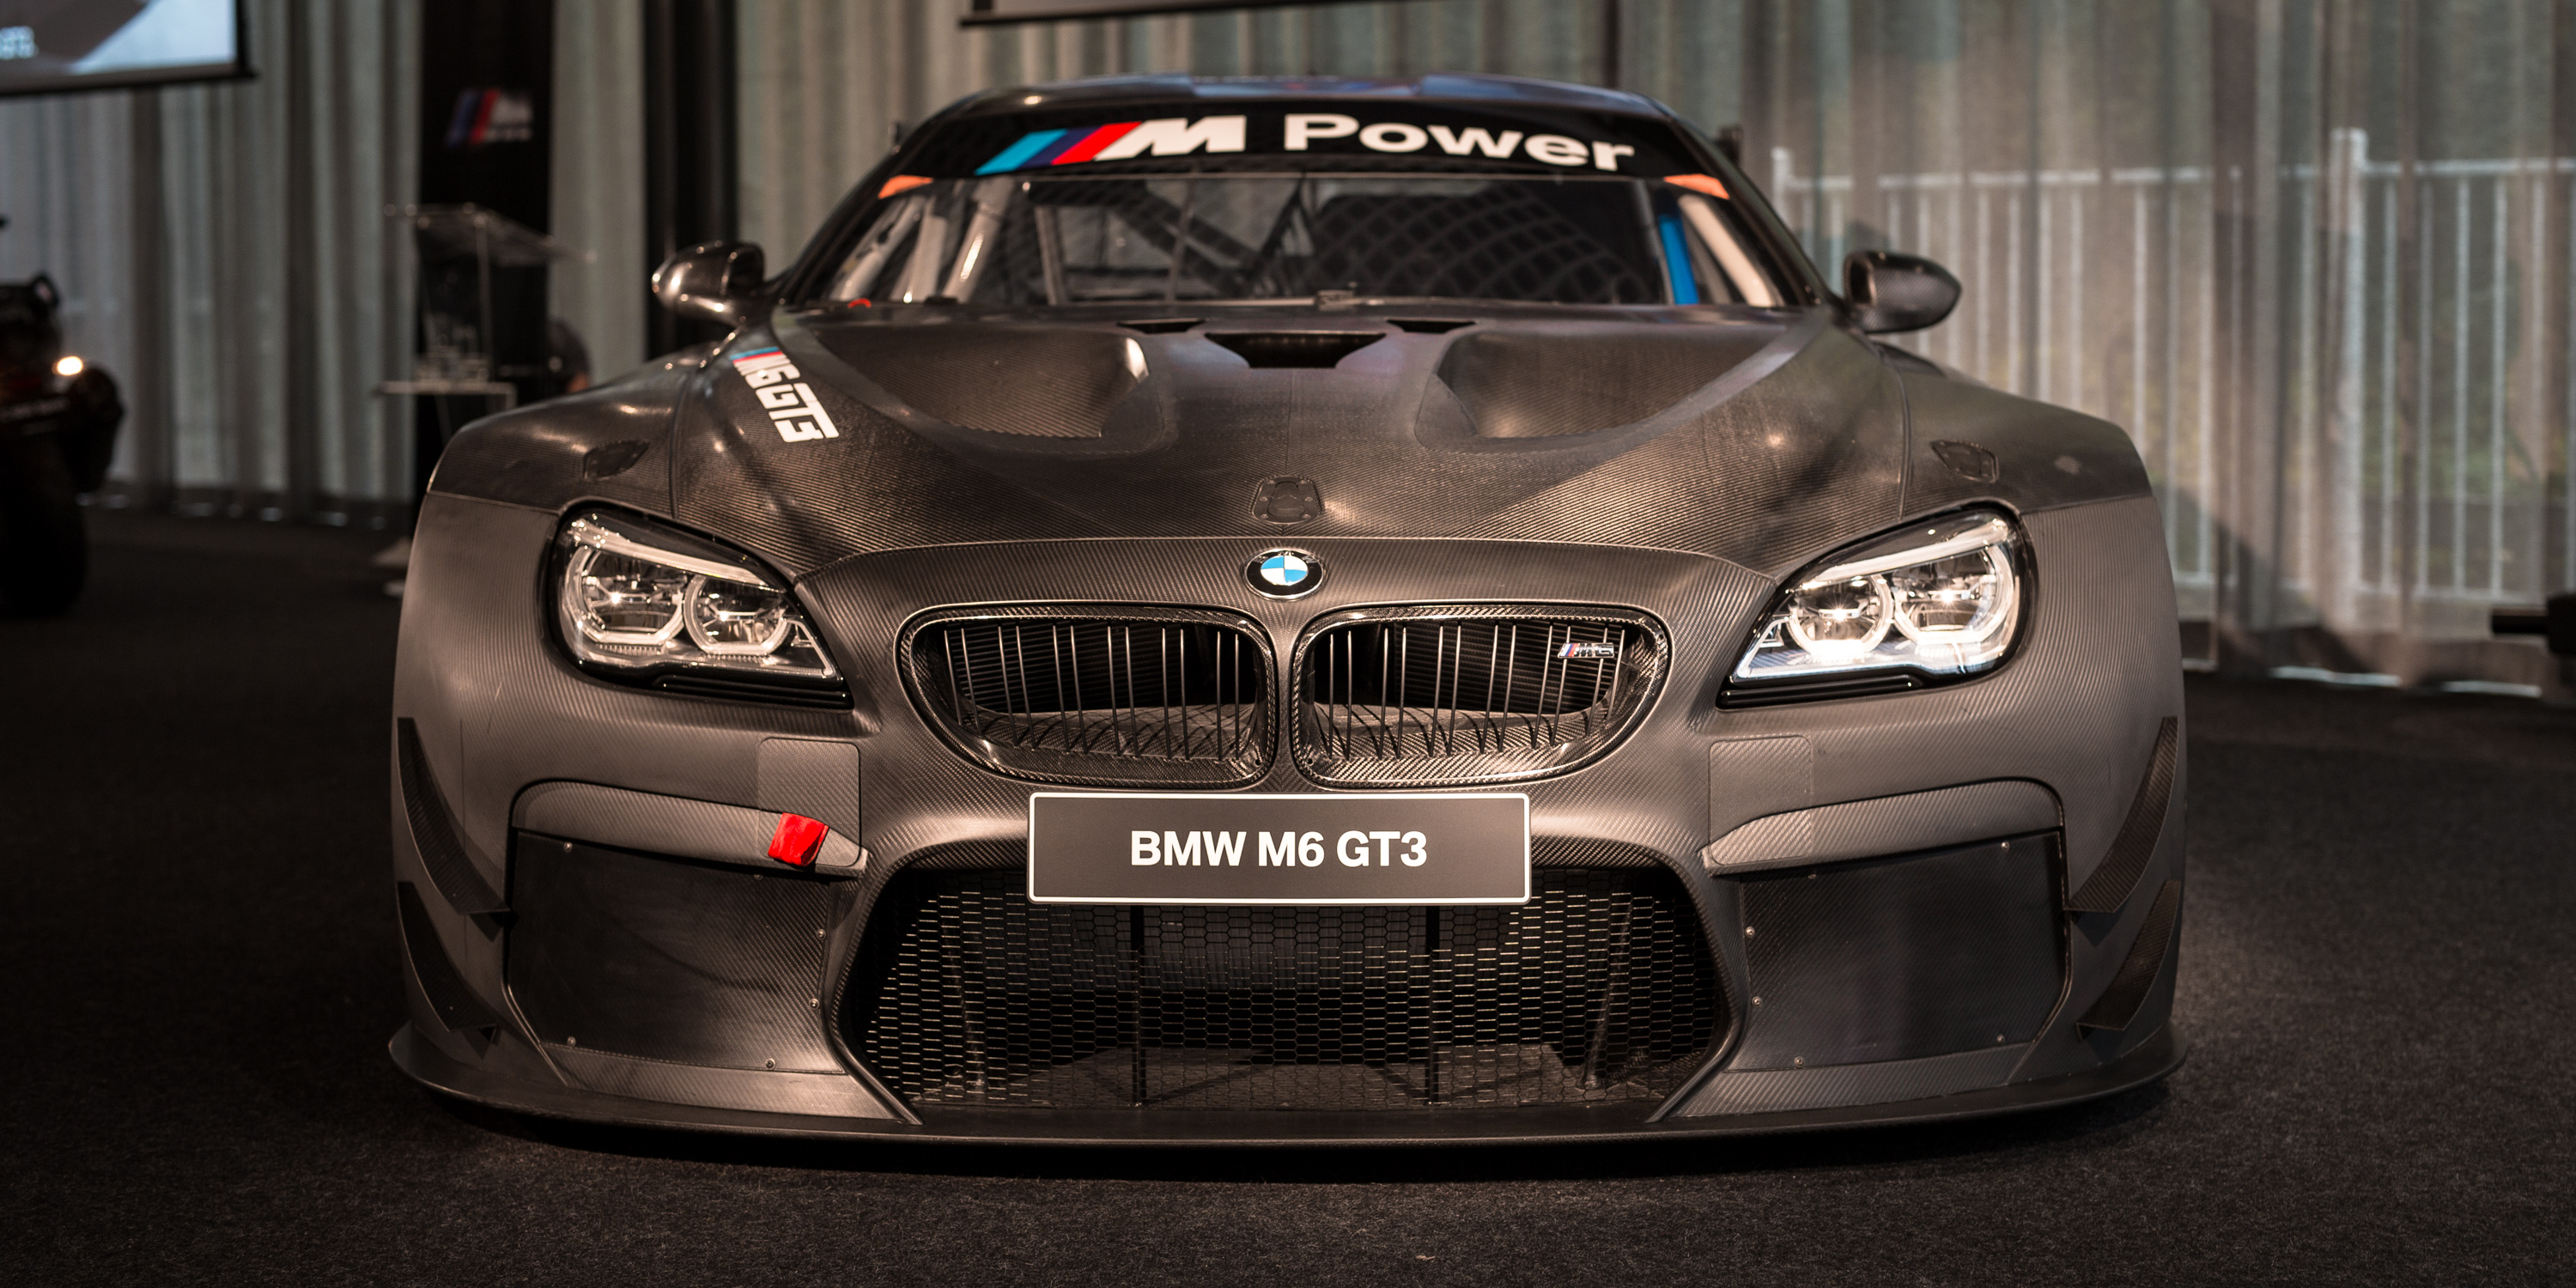 2016 bmw m6 gt3 twin turbo racer unveiled in melbourne ahead of full season assault photos. Black Bedroom Furniture Sets. Home Design Ideas